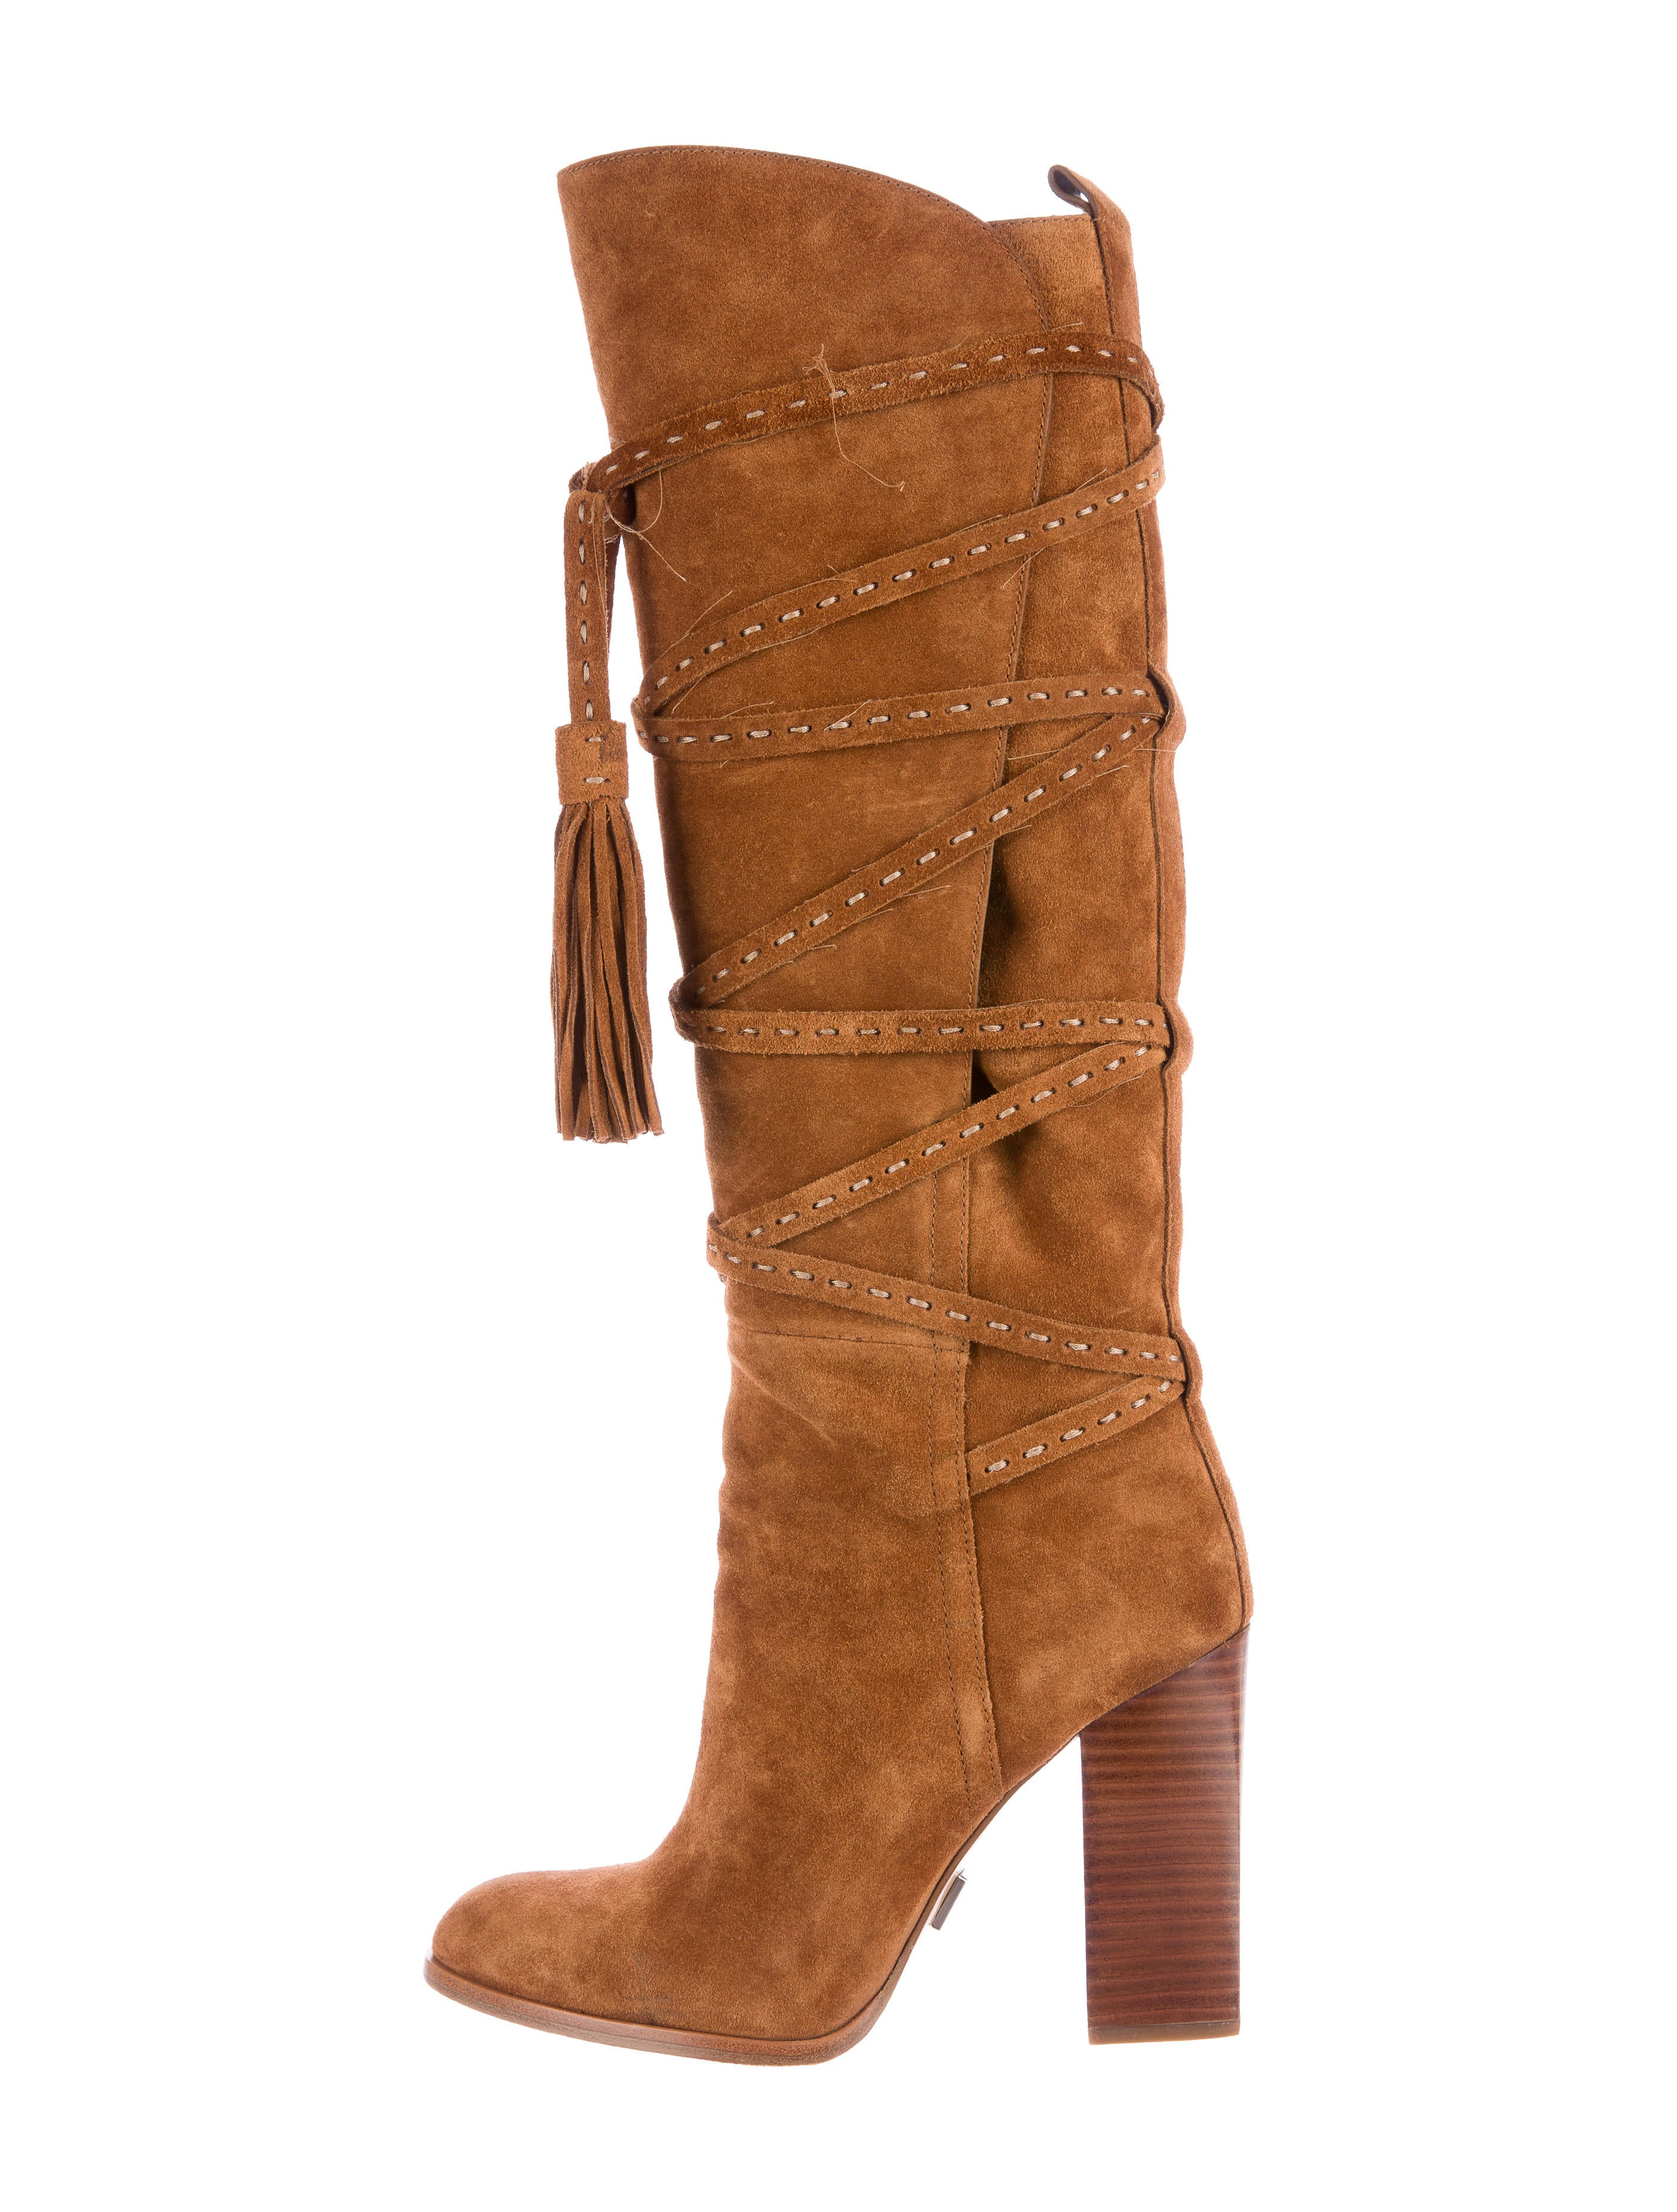 Find great deals on eBay for lace up suede ankle boots. Shop with confidence.